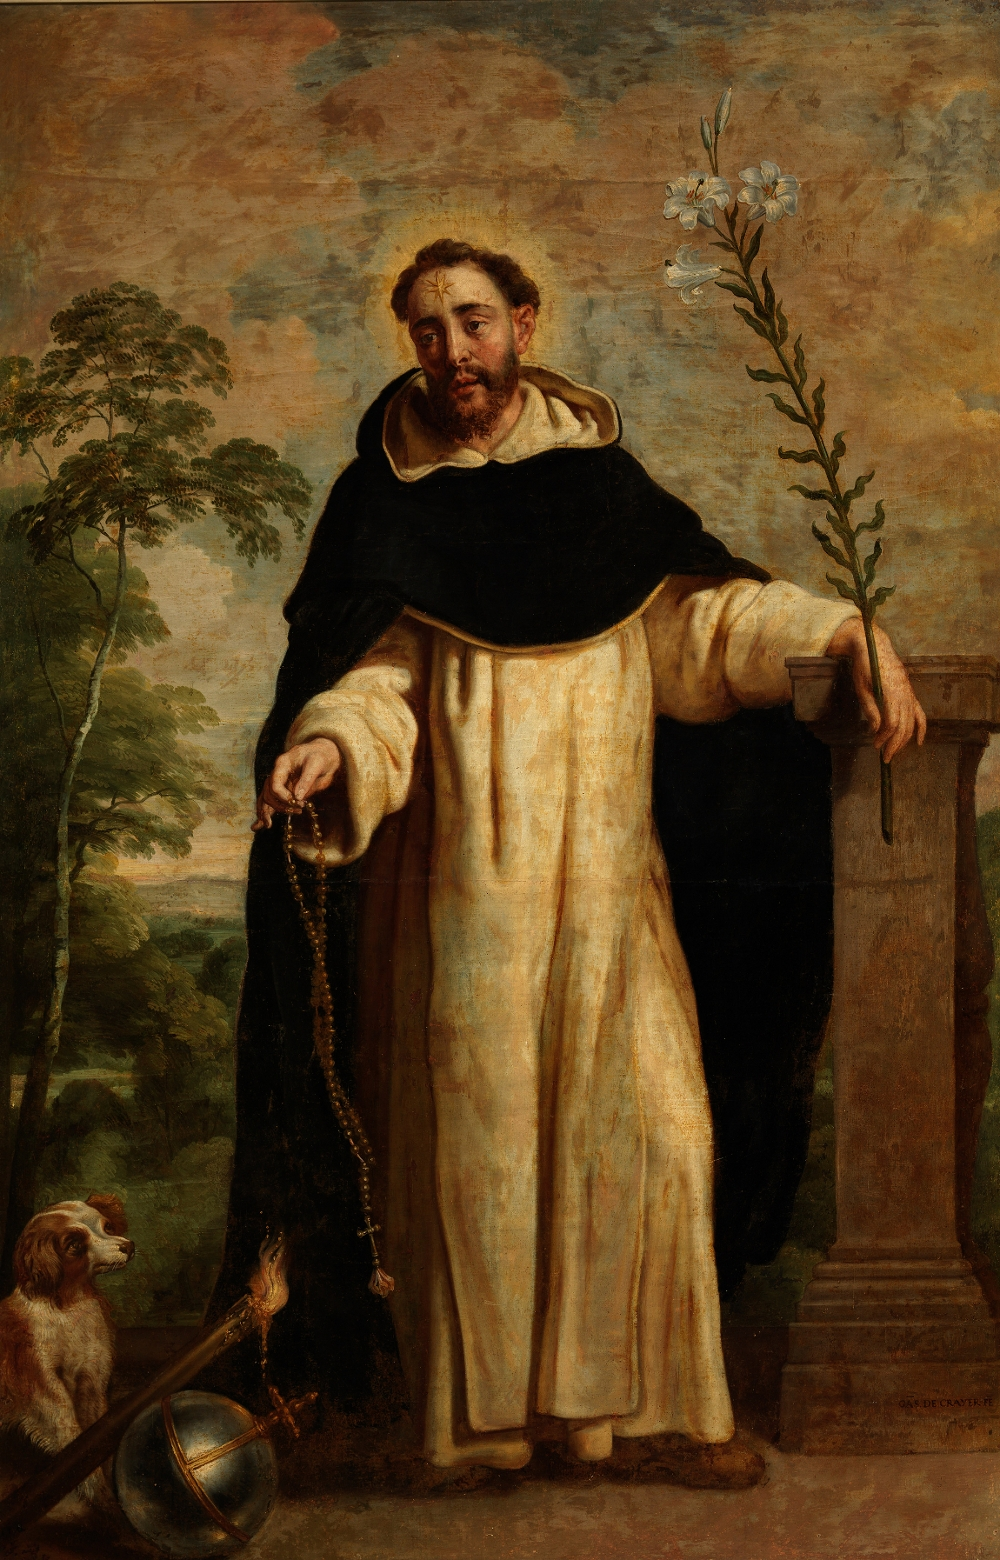 SAINT DOMINIQUE (1170-1221)